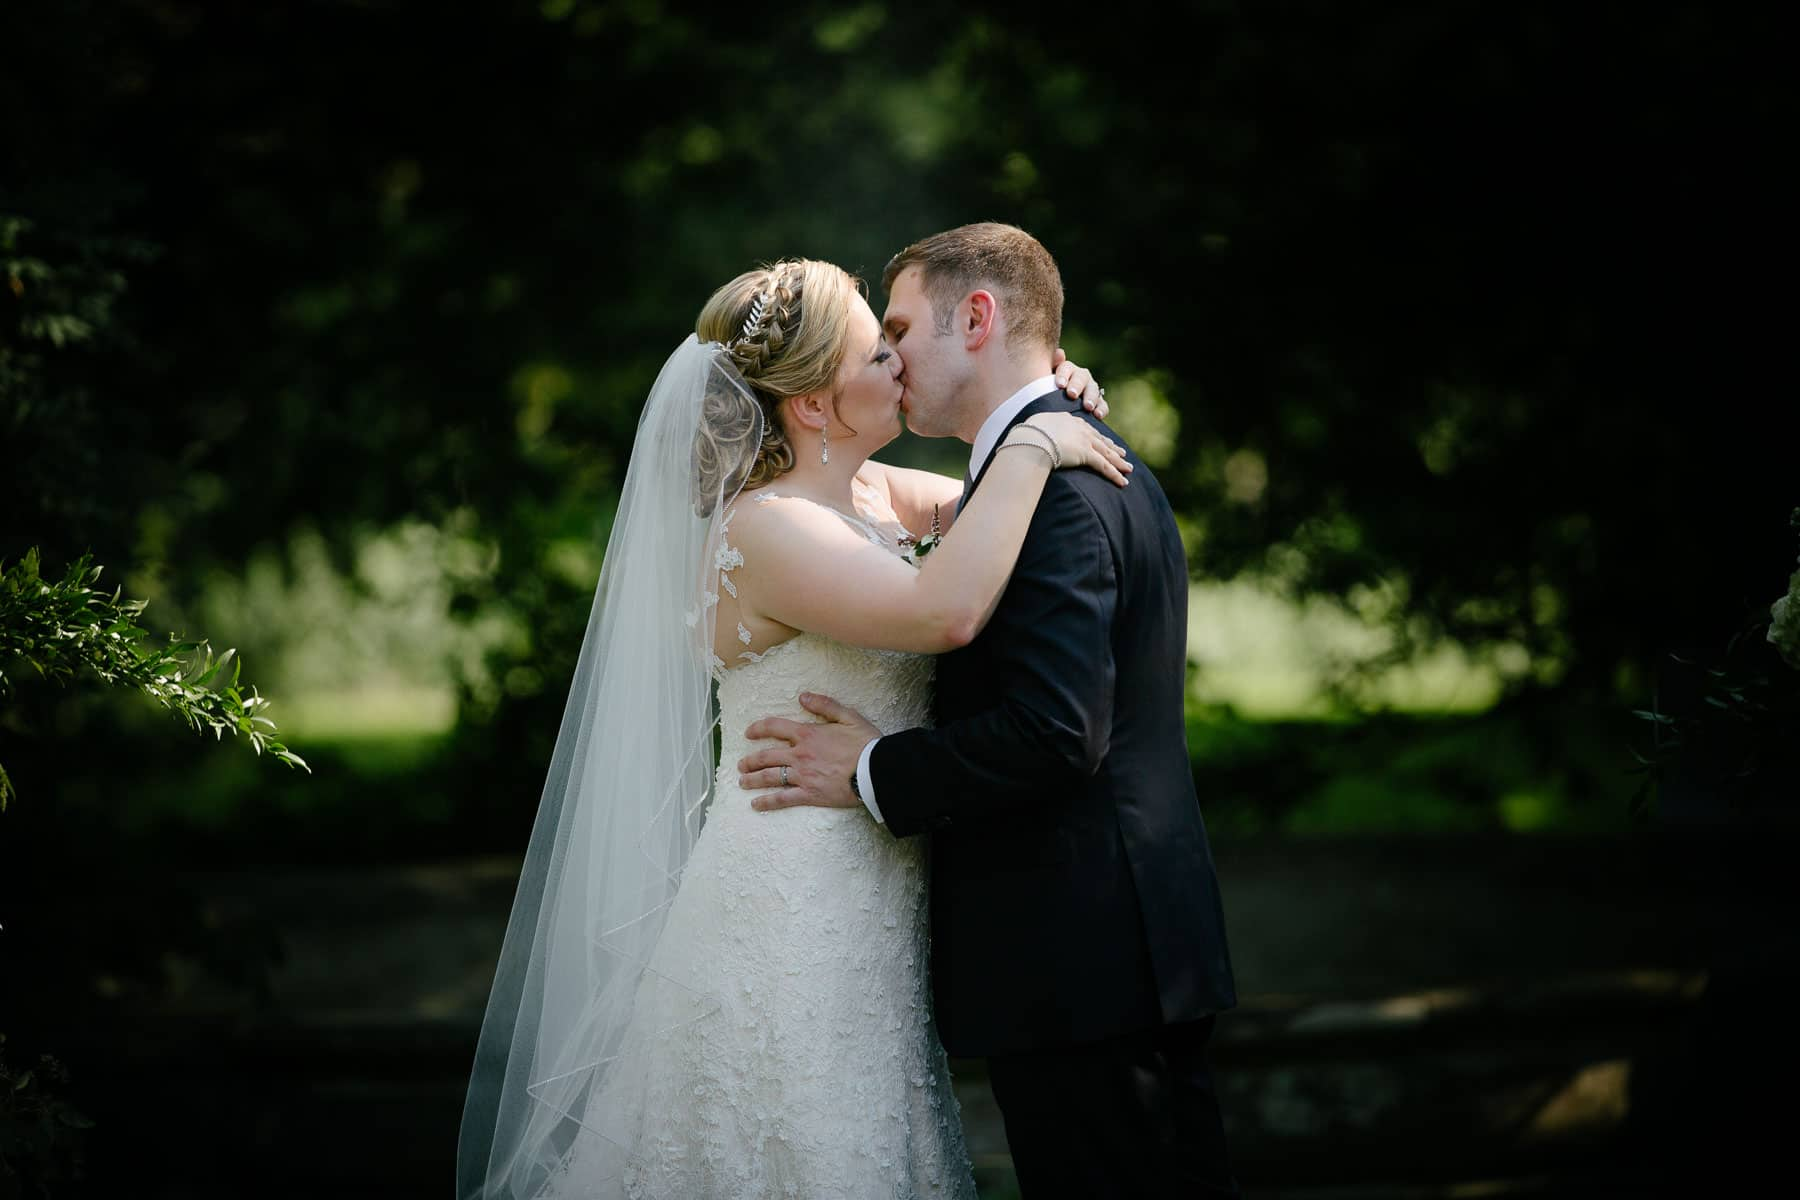 Bride and groom kissing during wedding ceremony at McClain House, Estates of Sunnybrook.